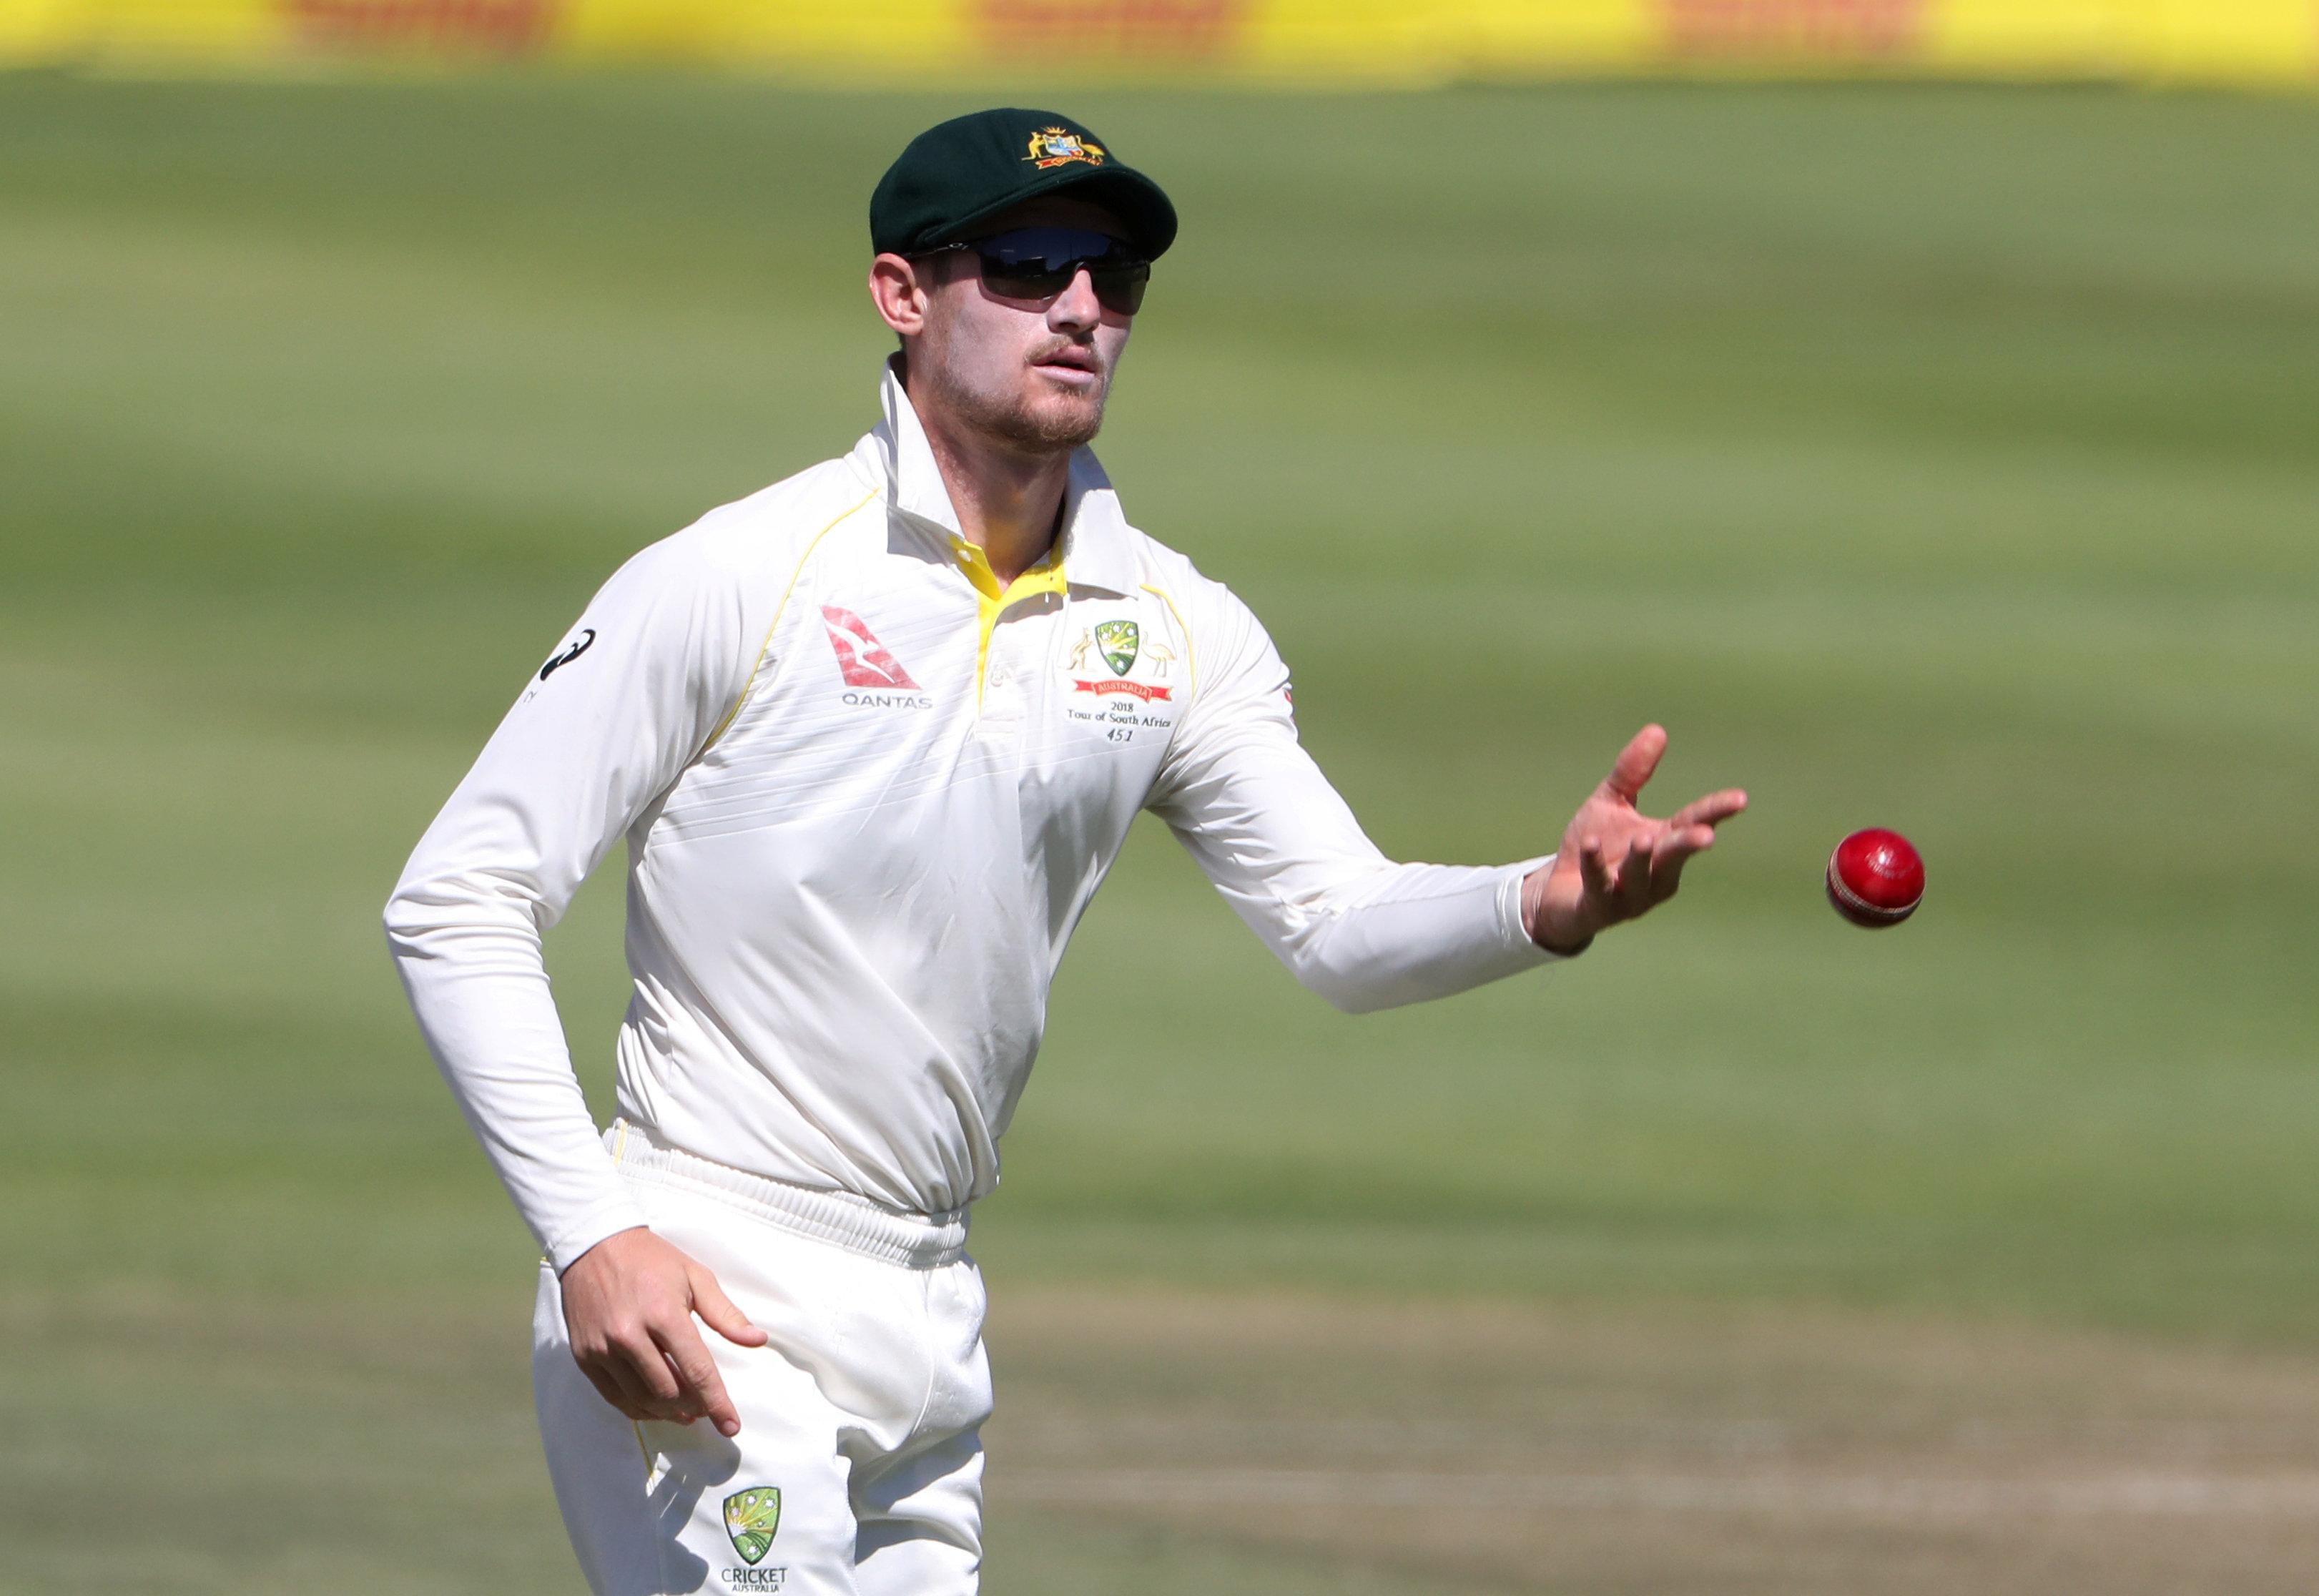 Cameron was spotted sandpapering a ball during a Test match in South Africa in March